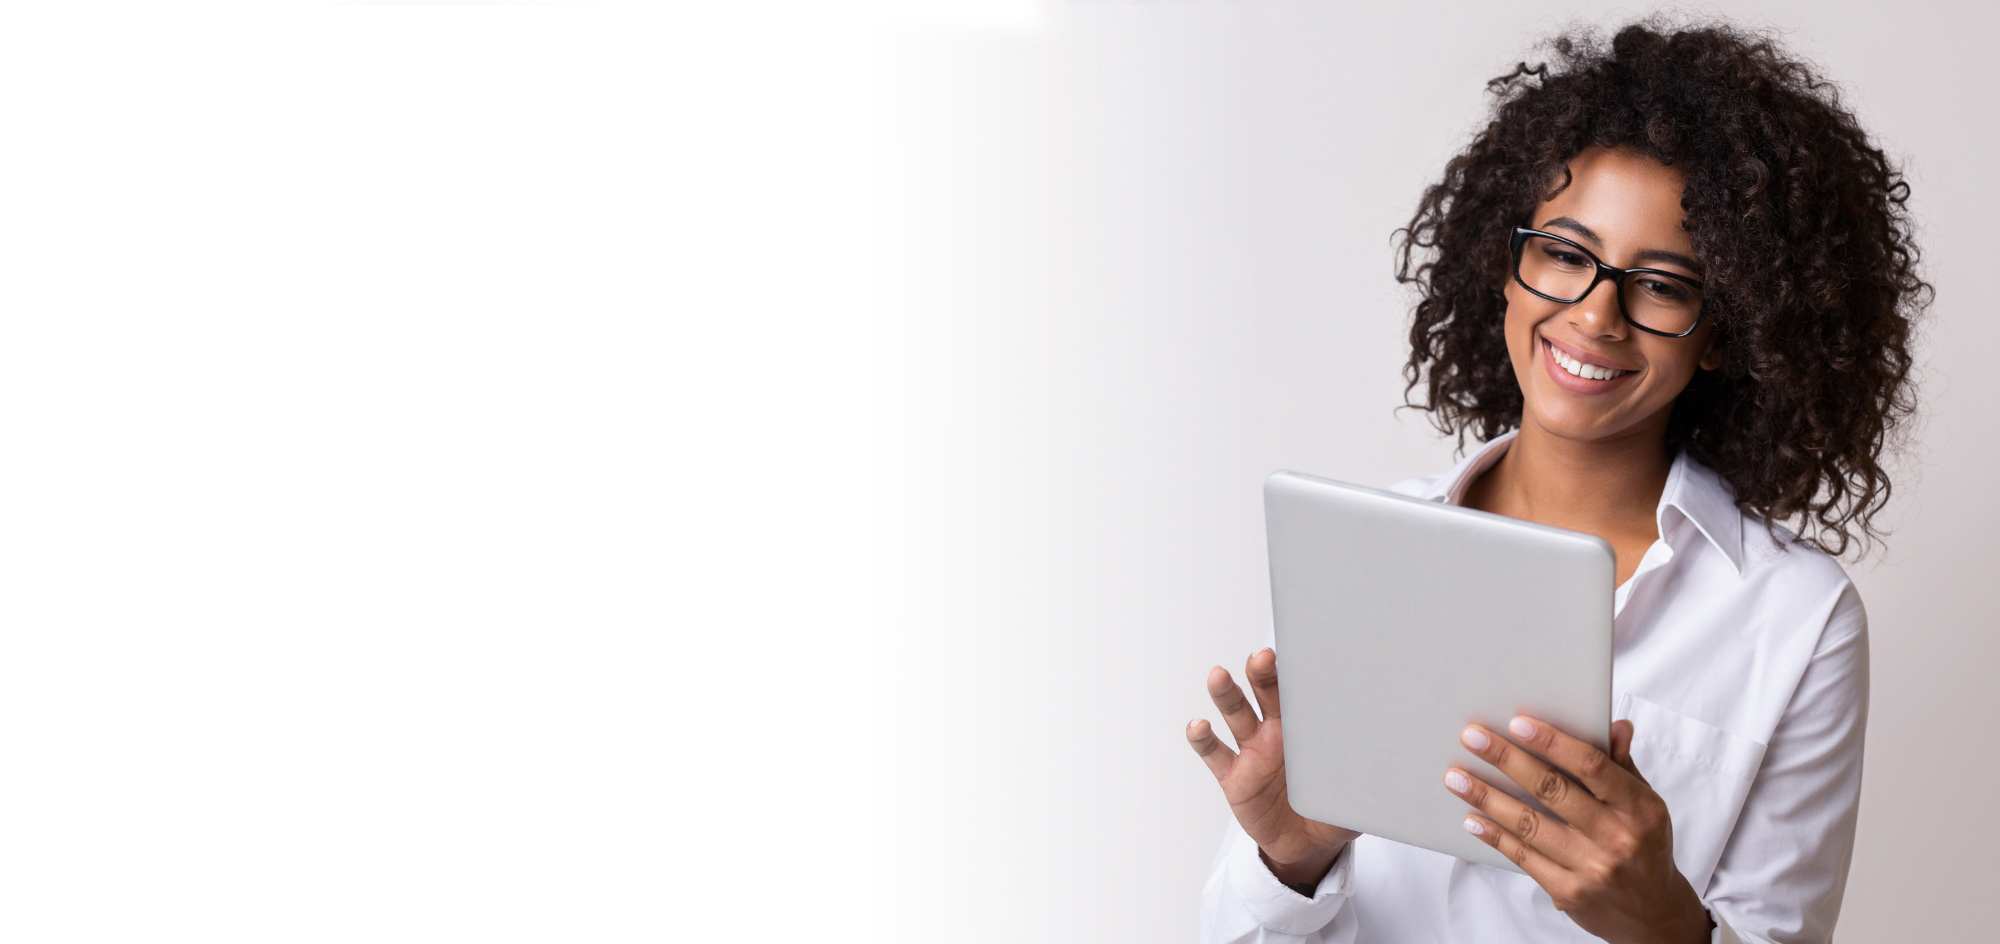 Employers looking through resumes on a tablet